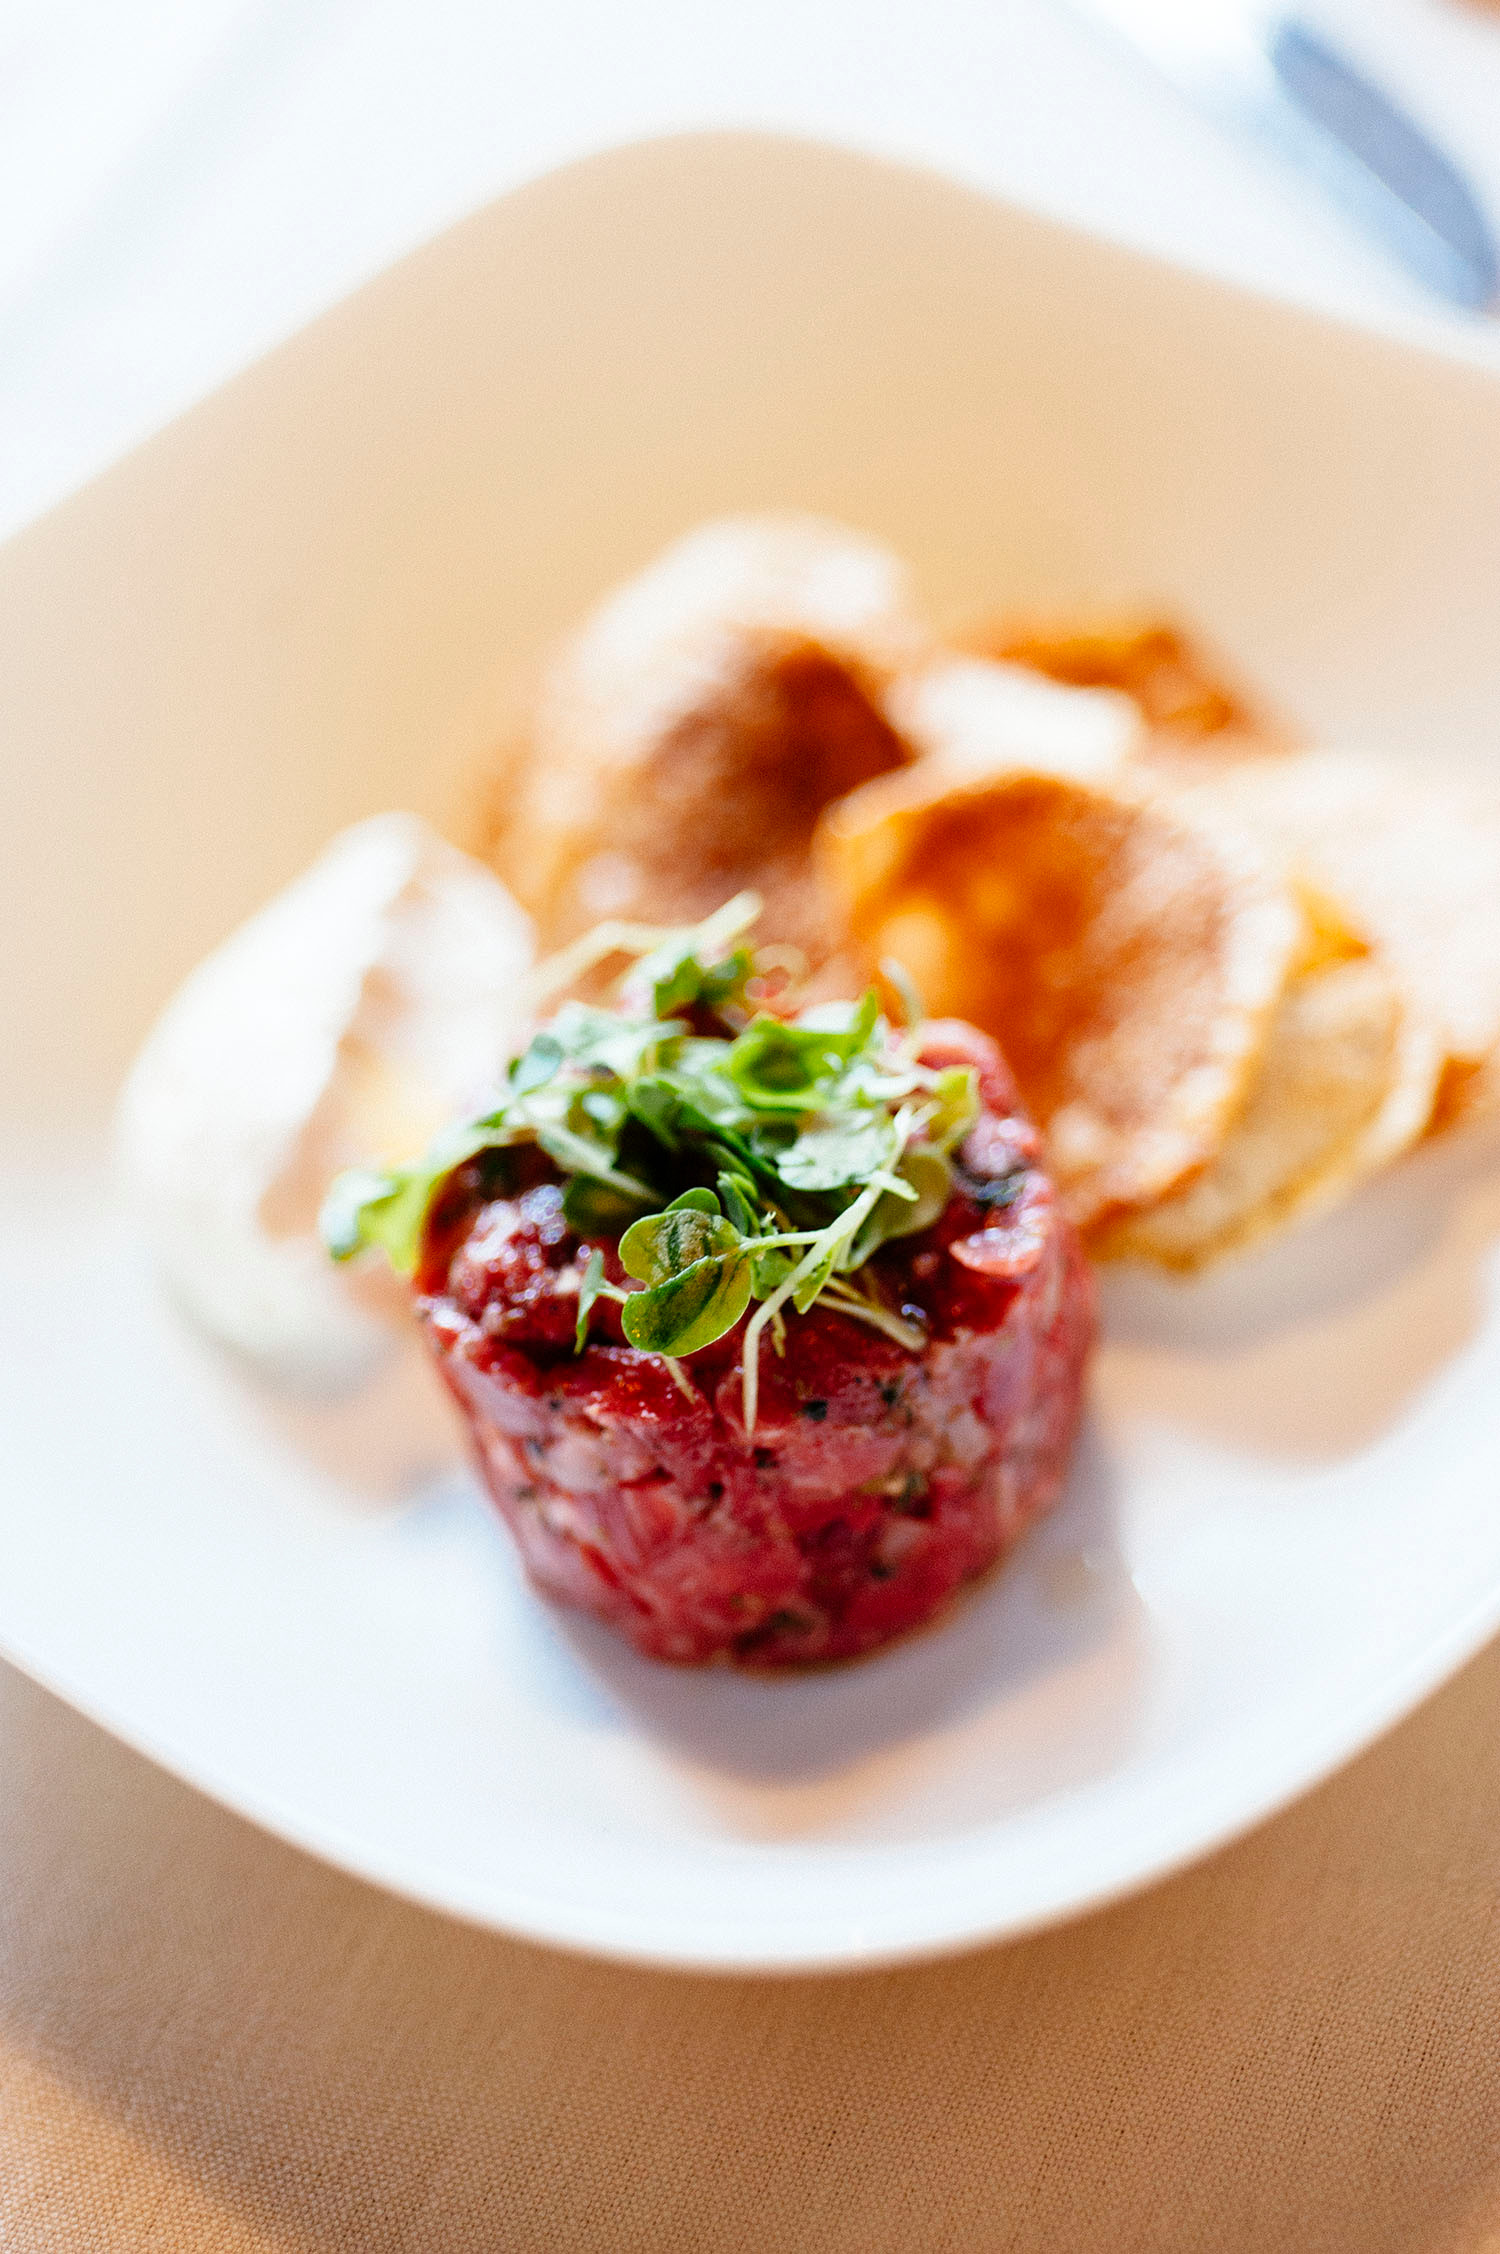 Steak Tartare with housemade chips and Dijon mousse